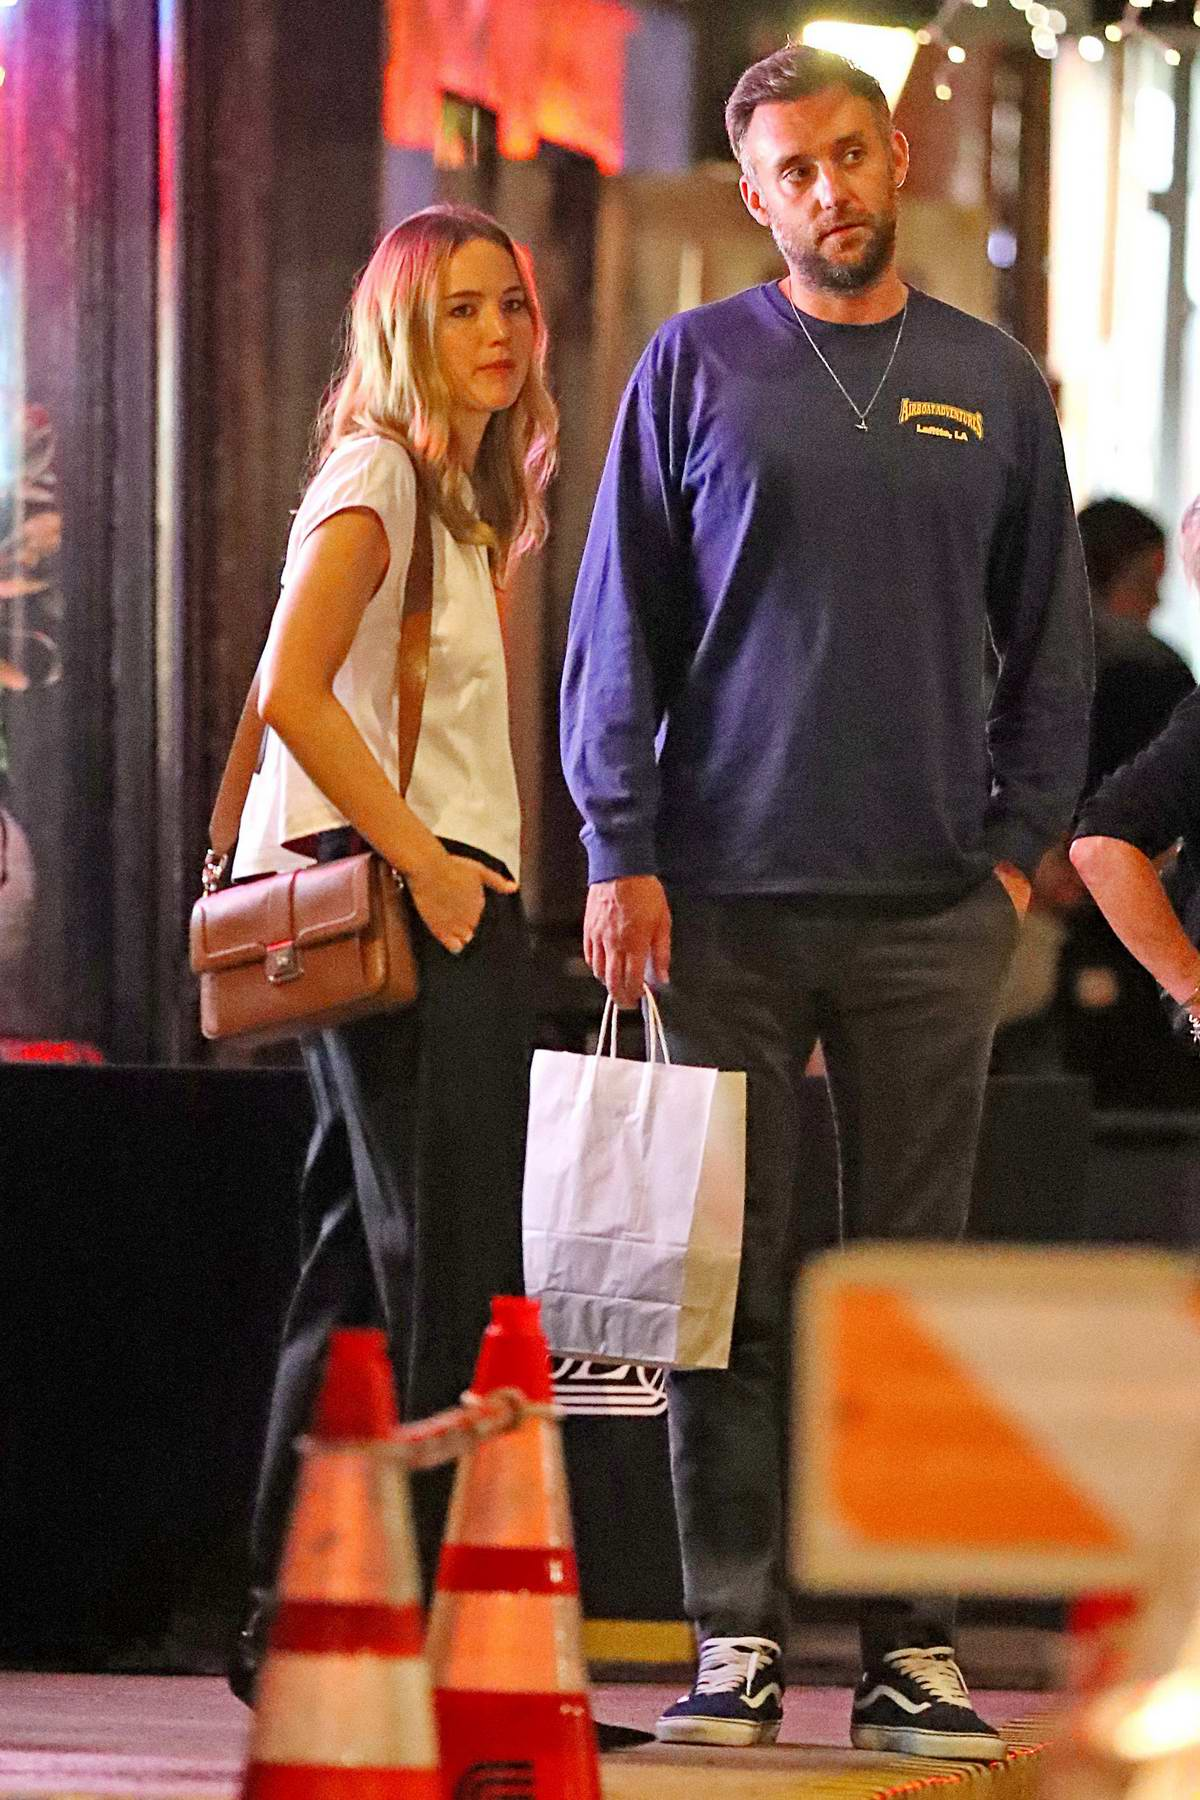 Jennifer Lawrence wears a white top and black trousers during a date night with Cooke Maroney in New York City